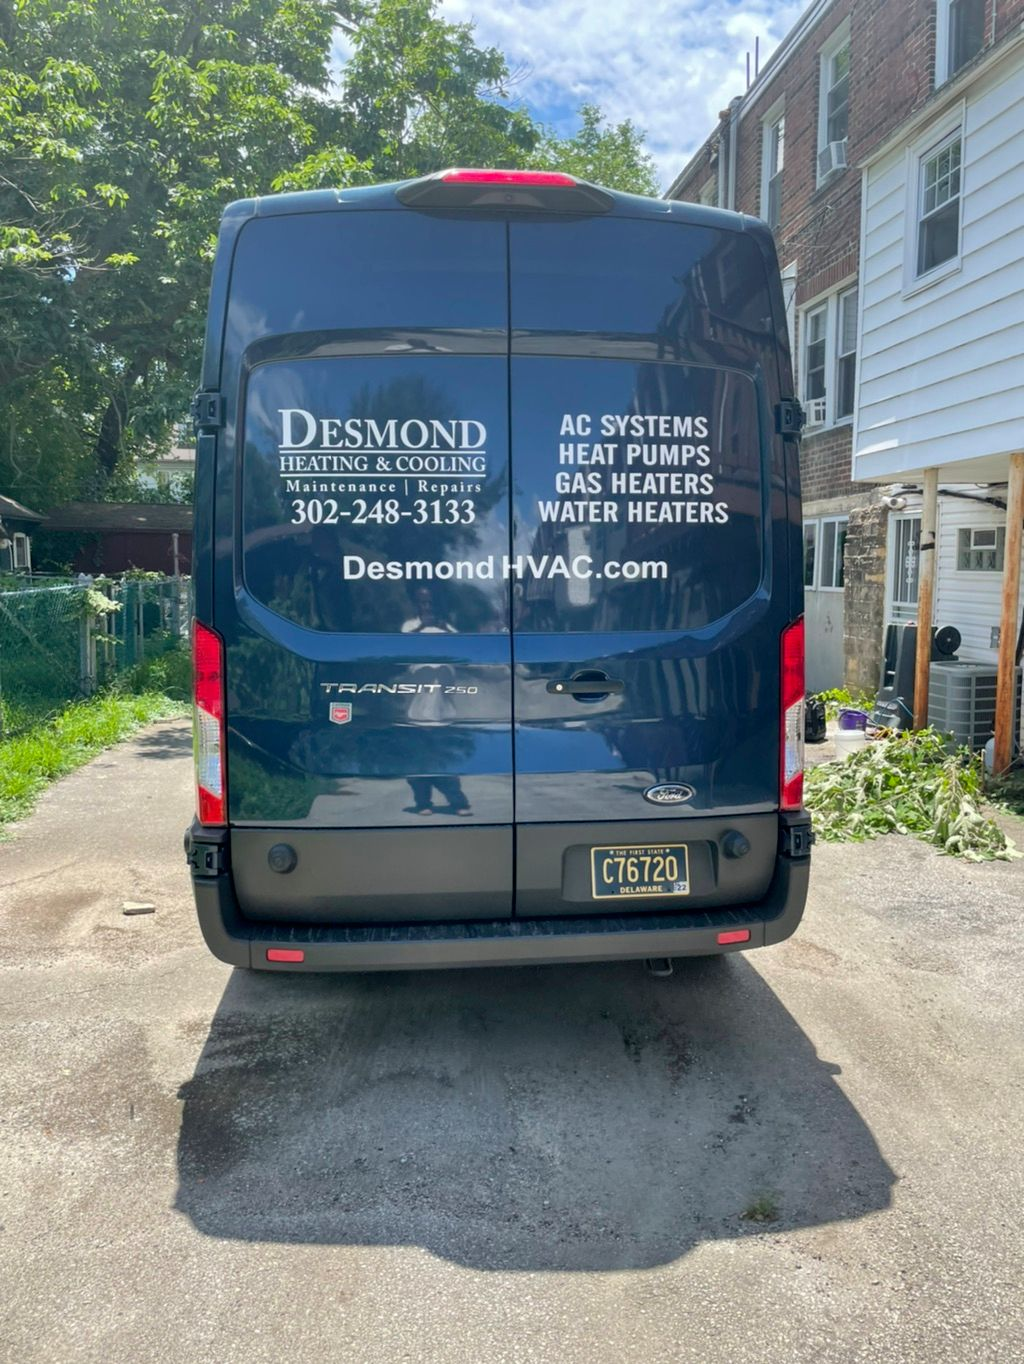 Desmond Heating & cooling solutions